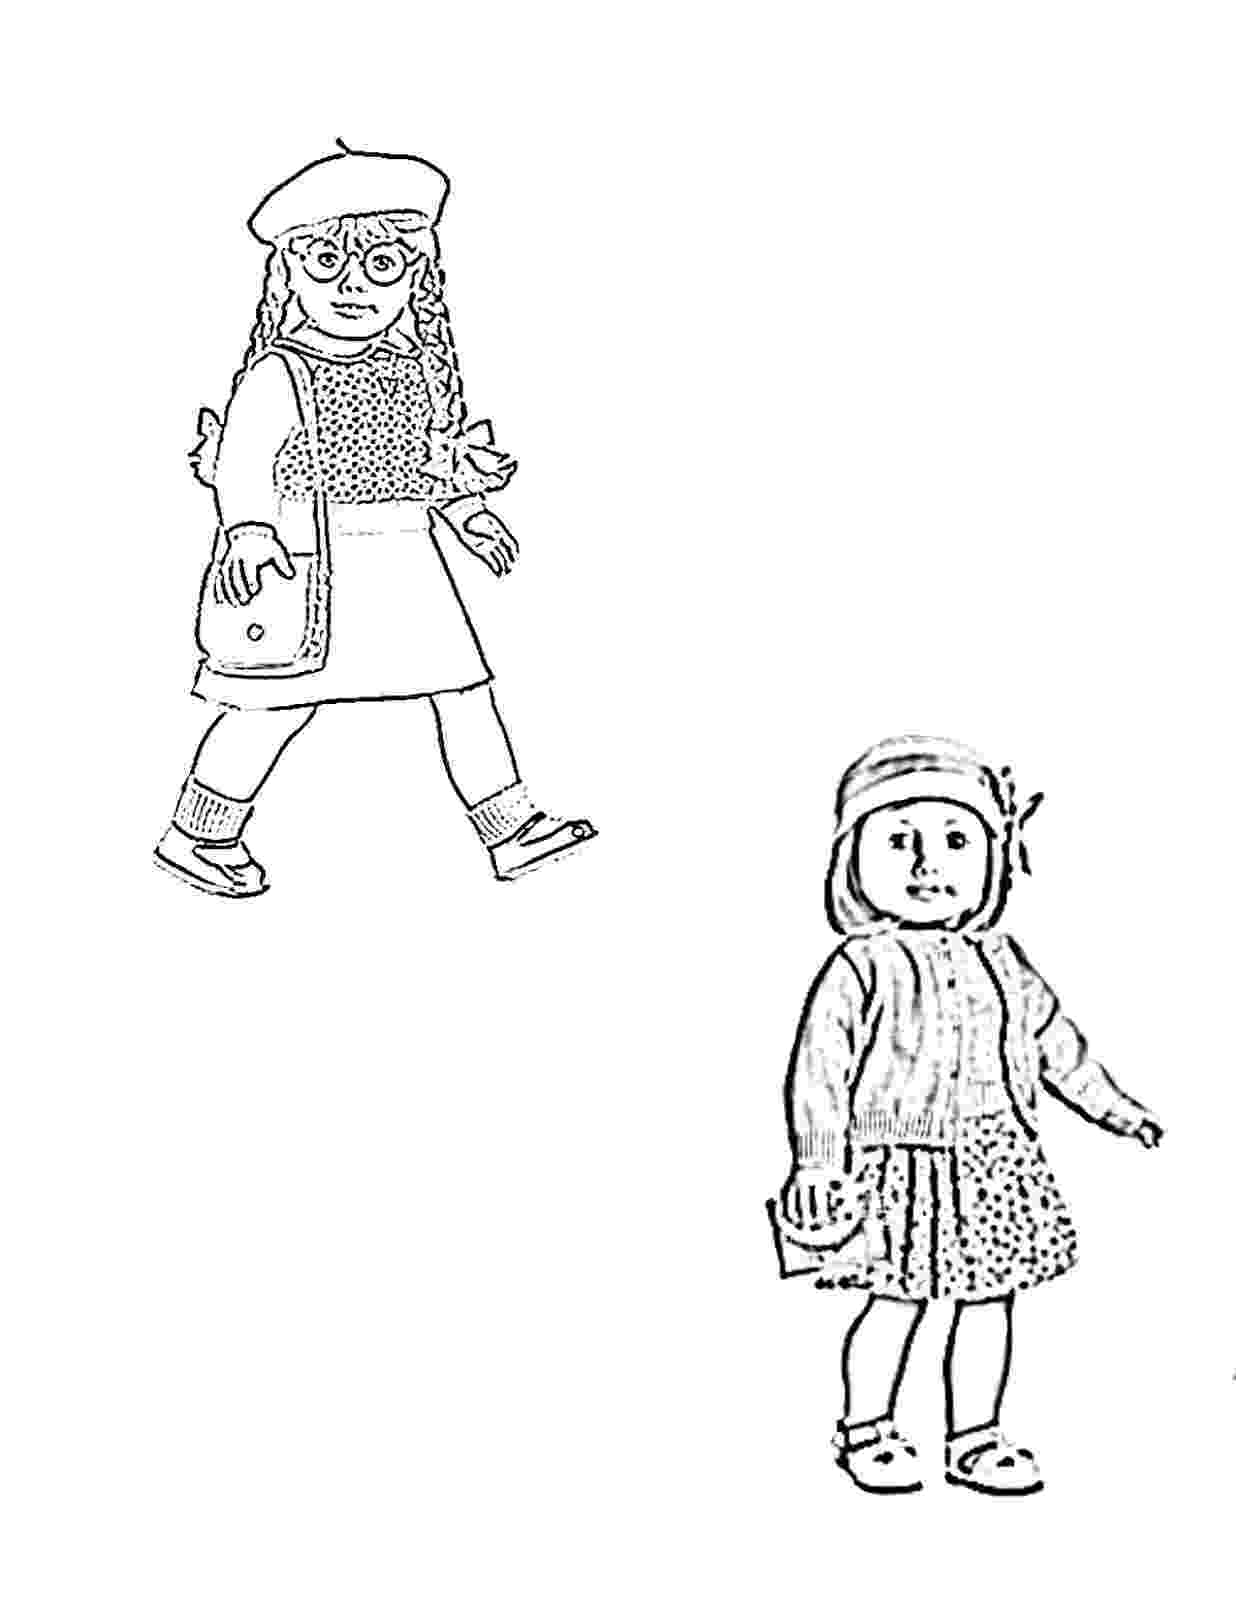 american girl doll free coloring pages american girl doll coloring pages wecoloringpagecom pages girl free doll american coloring